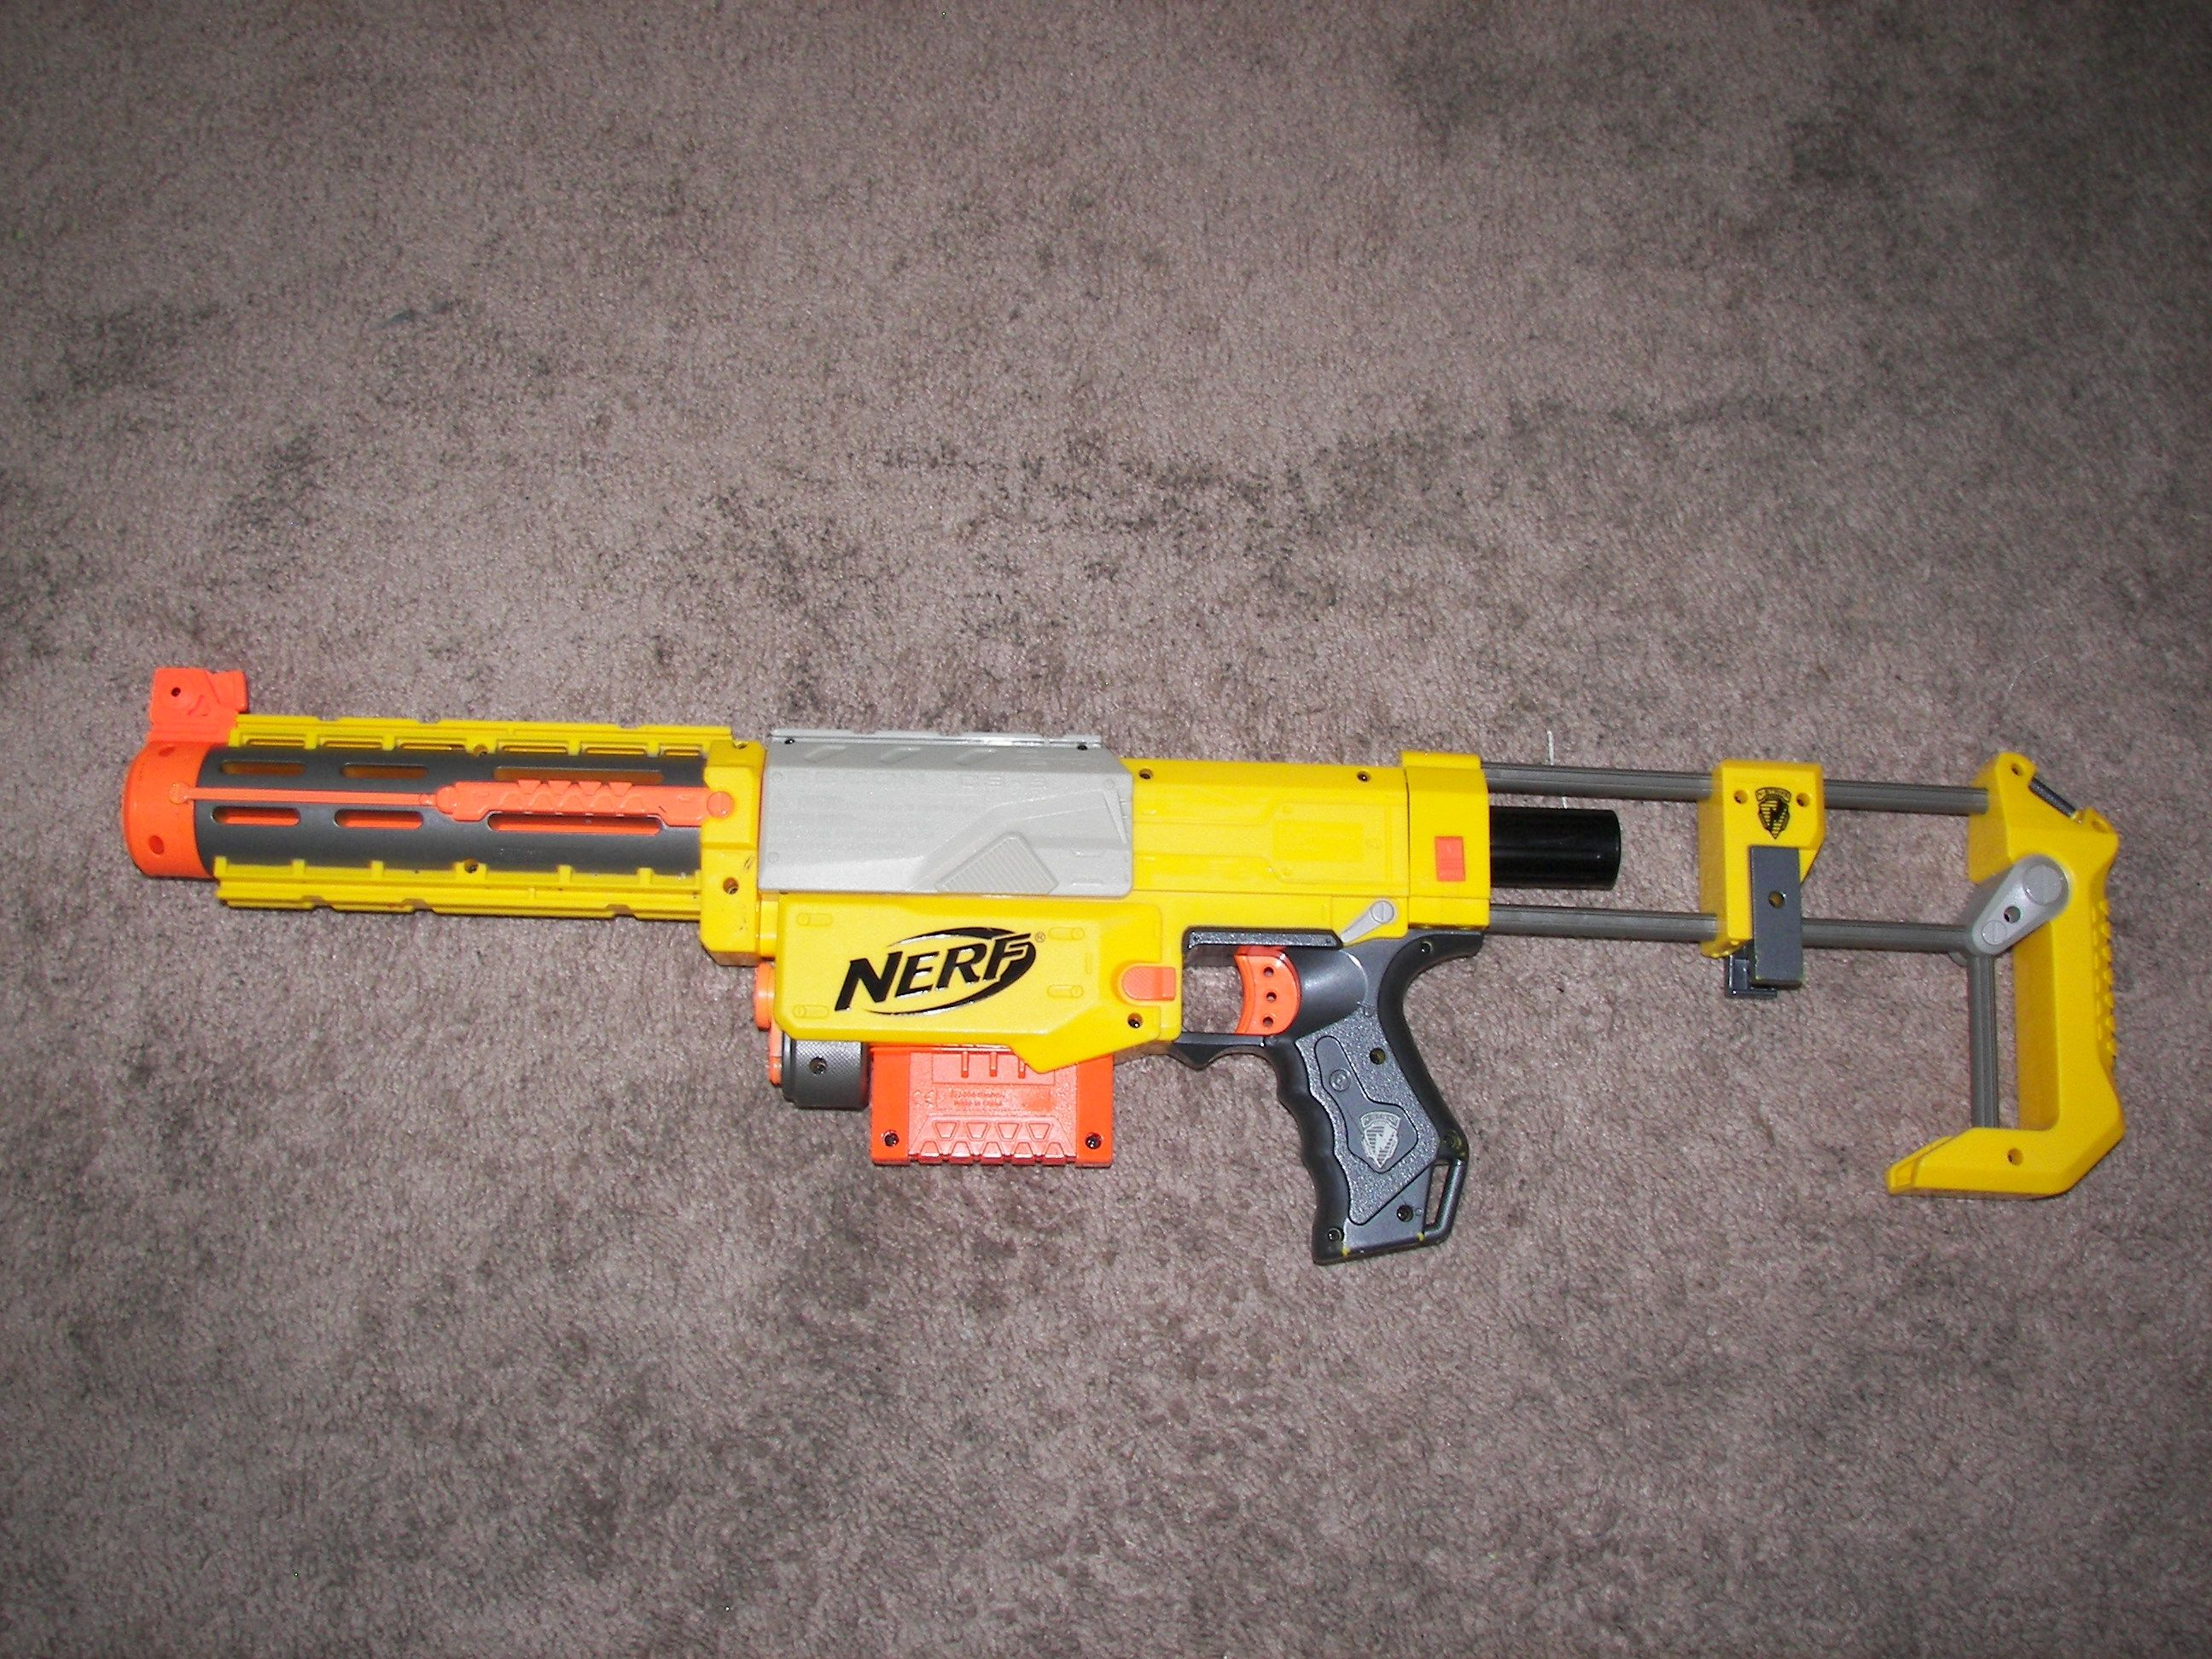 If anyone lives and flower mound and has nerf guns battle me and